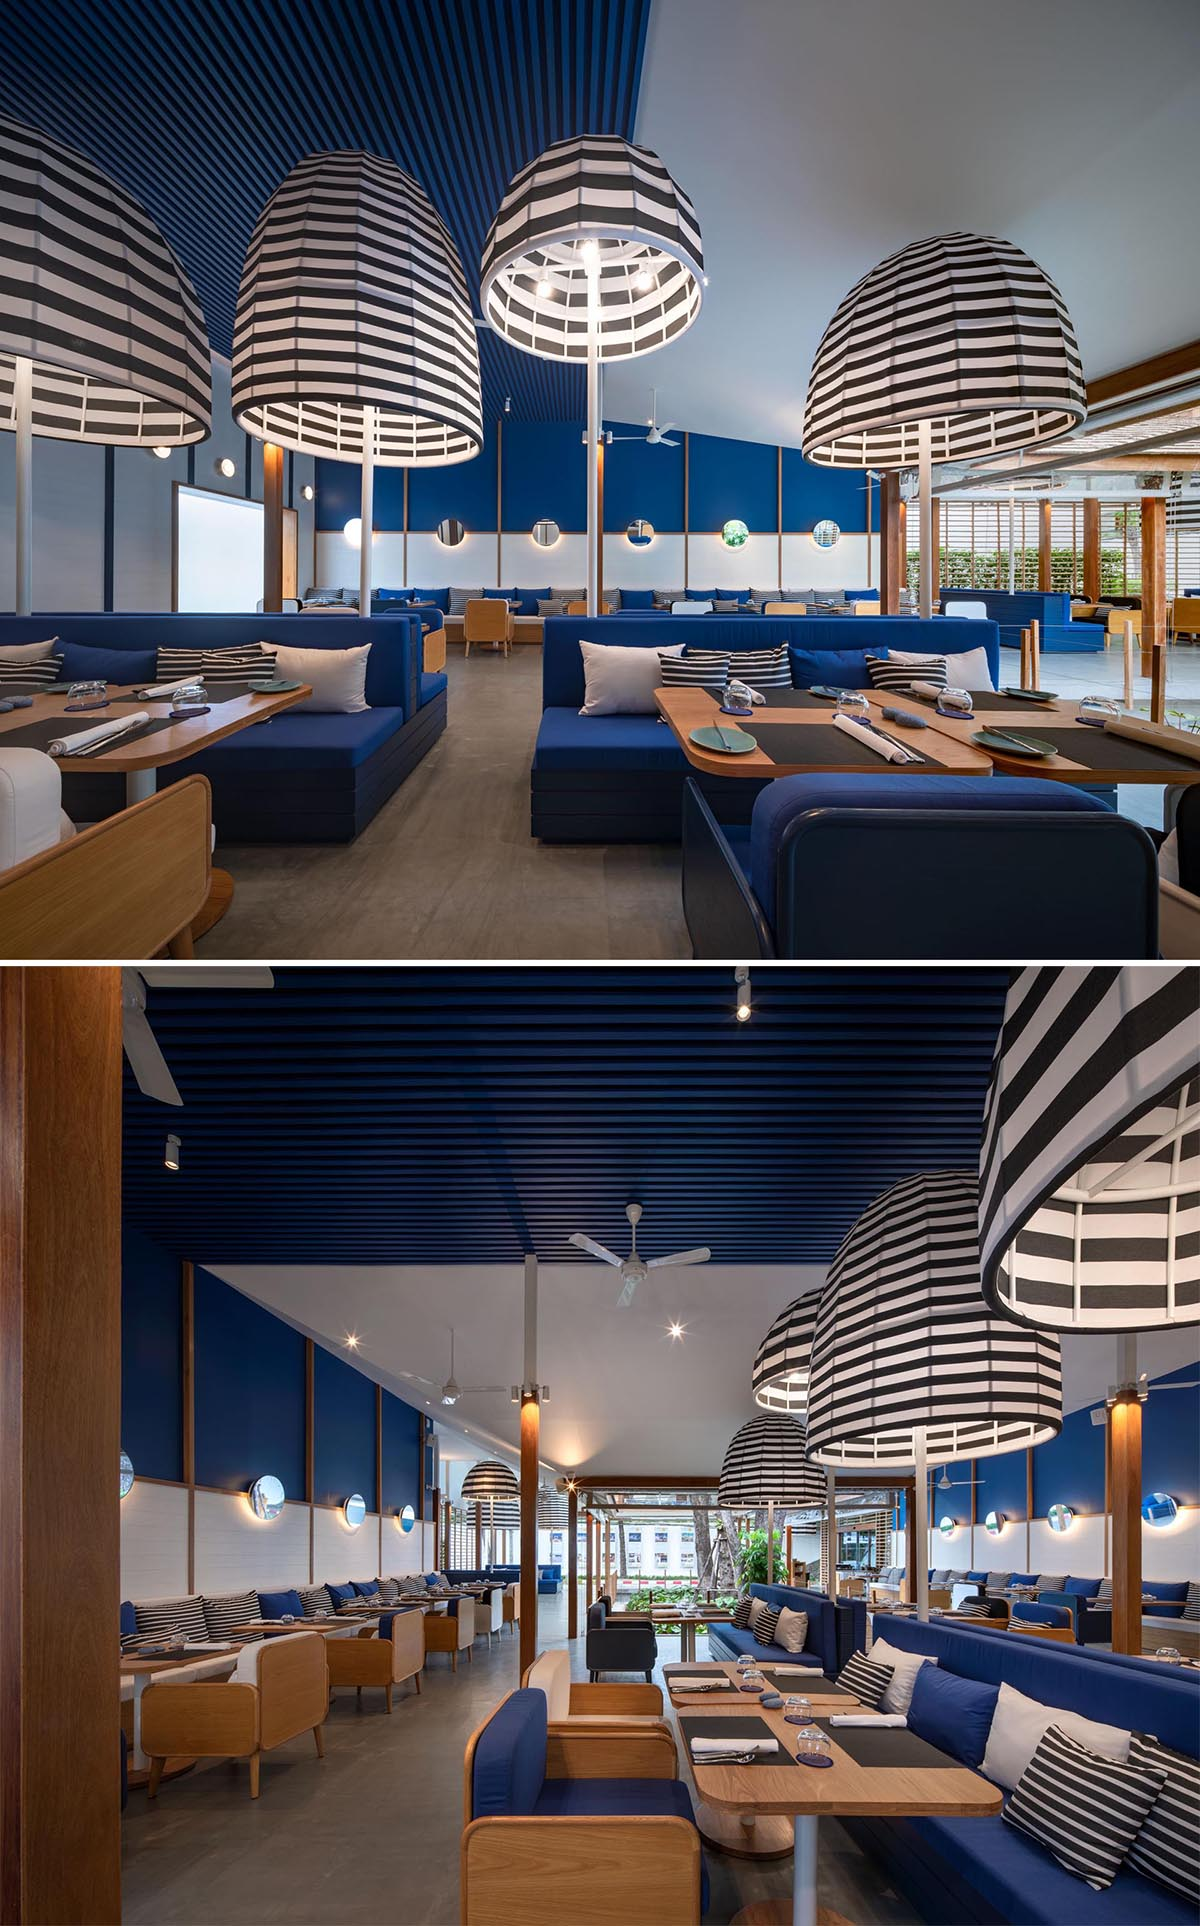 A modern hotel restaurant with a blue and white theme, as well as black and white striped accents.